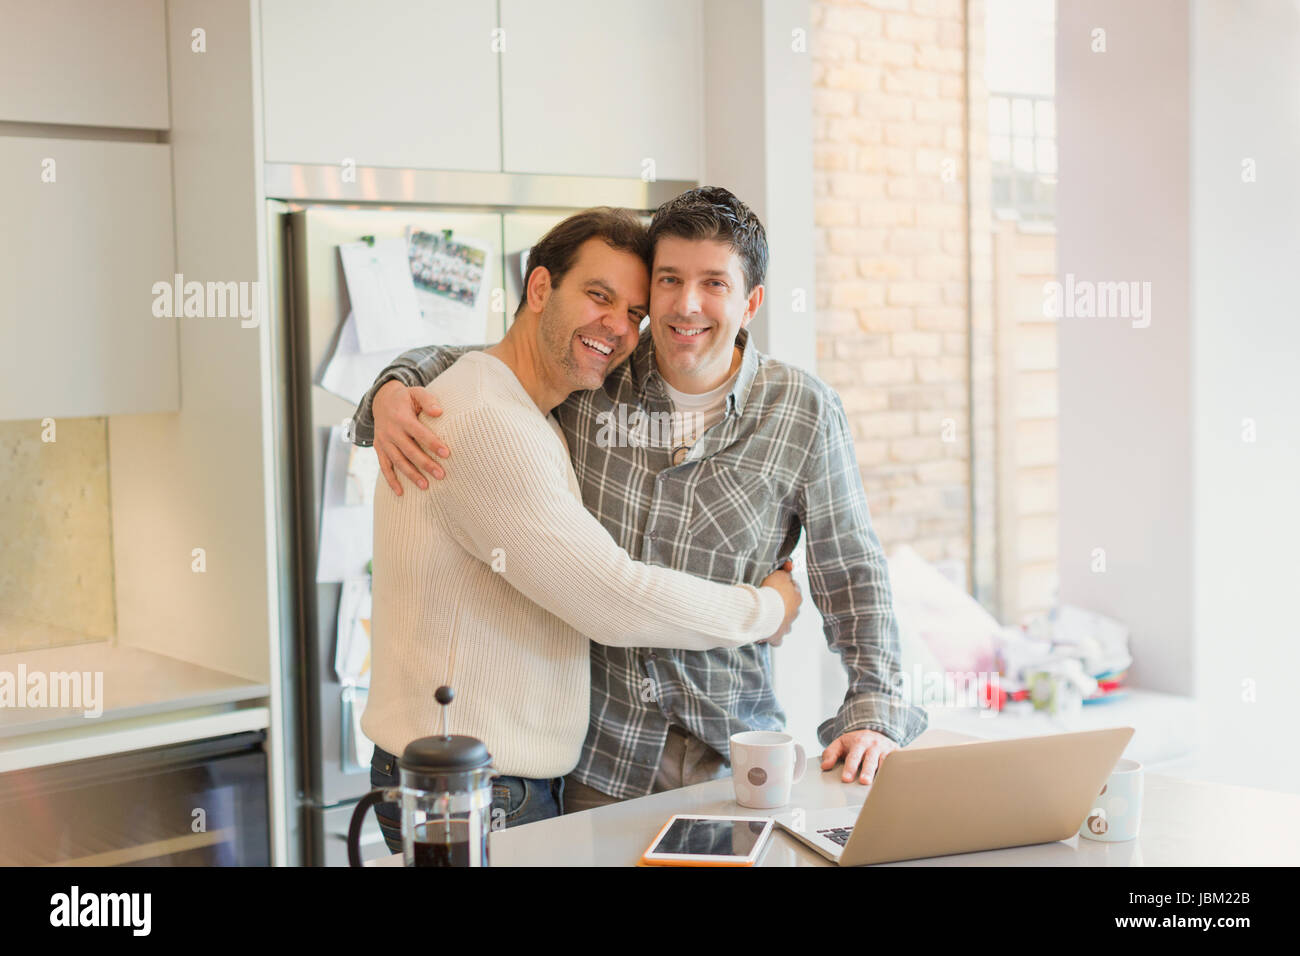 1f391f2441 Portrait affectionate male gay couple hugging at laptop in kitchen - Stock  Image